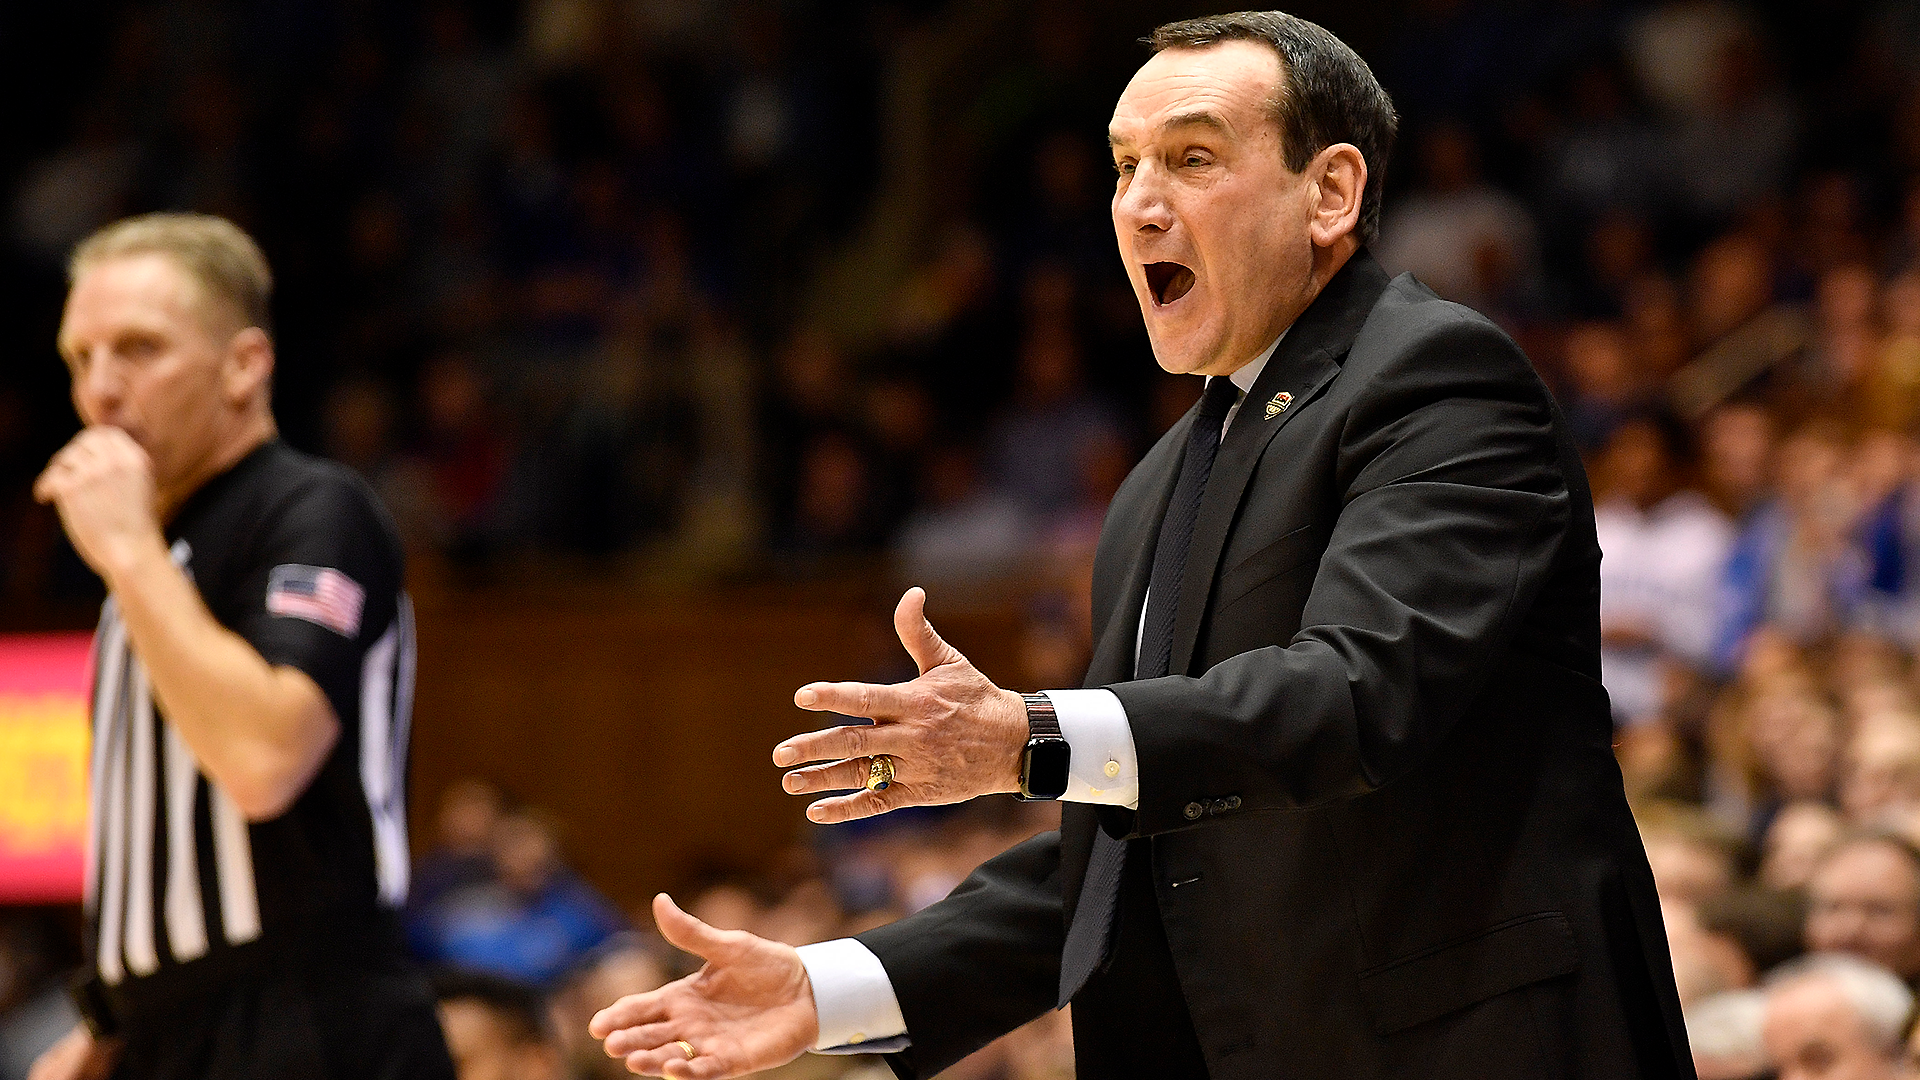 Coach K says 'plowing through' college basketball season doesn't feel right as COVID-19 cases rise